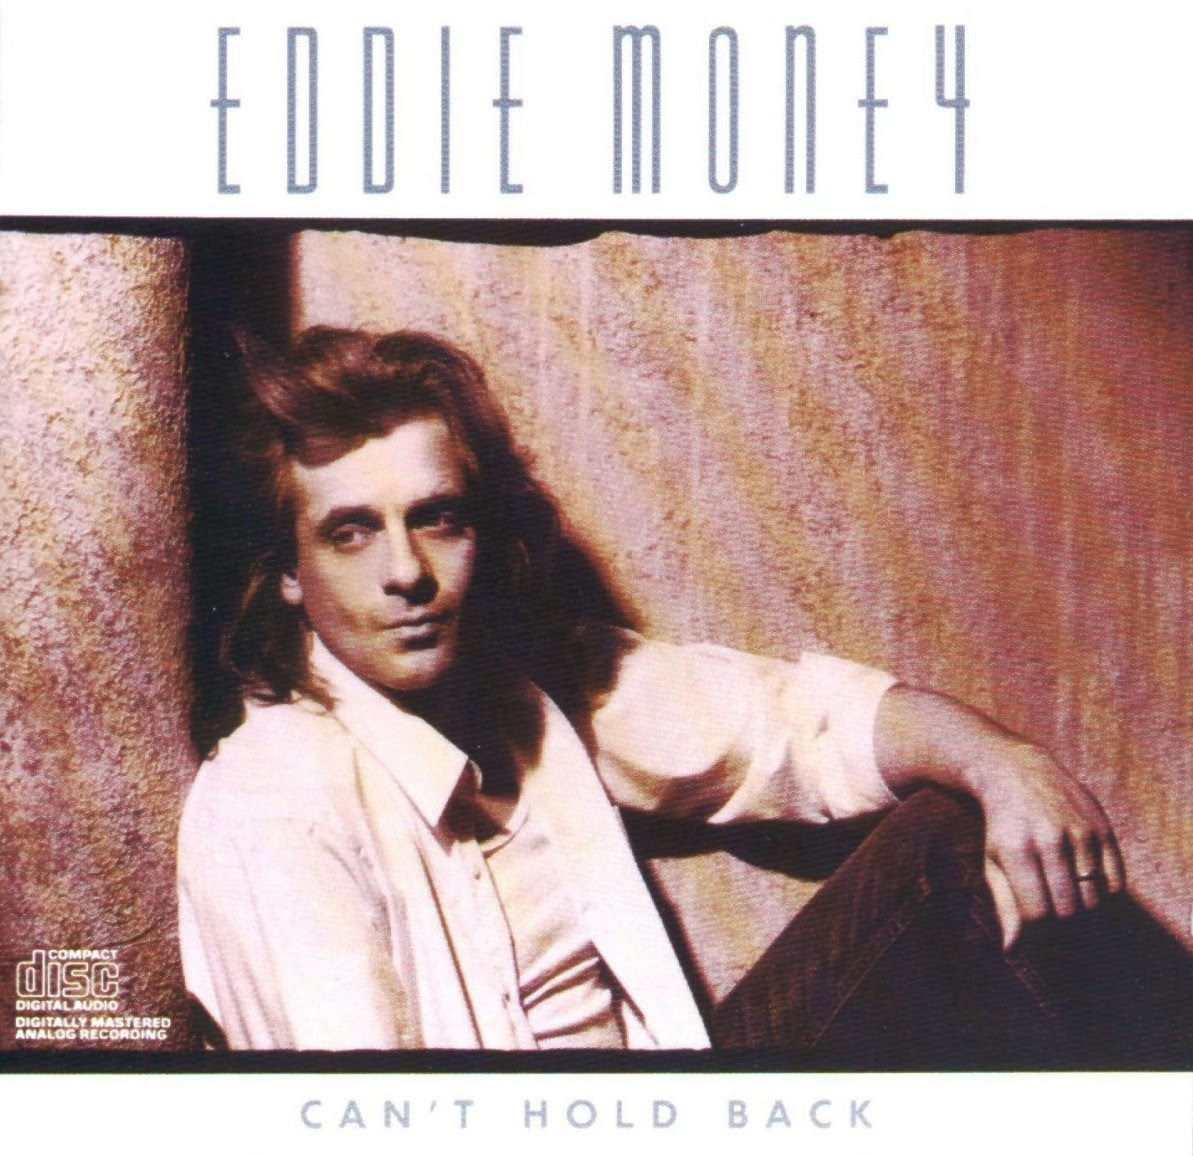 Eddie Money Can't hold back 1986 aor melodic rock